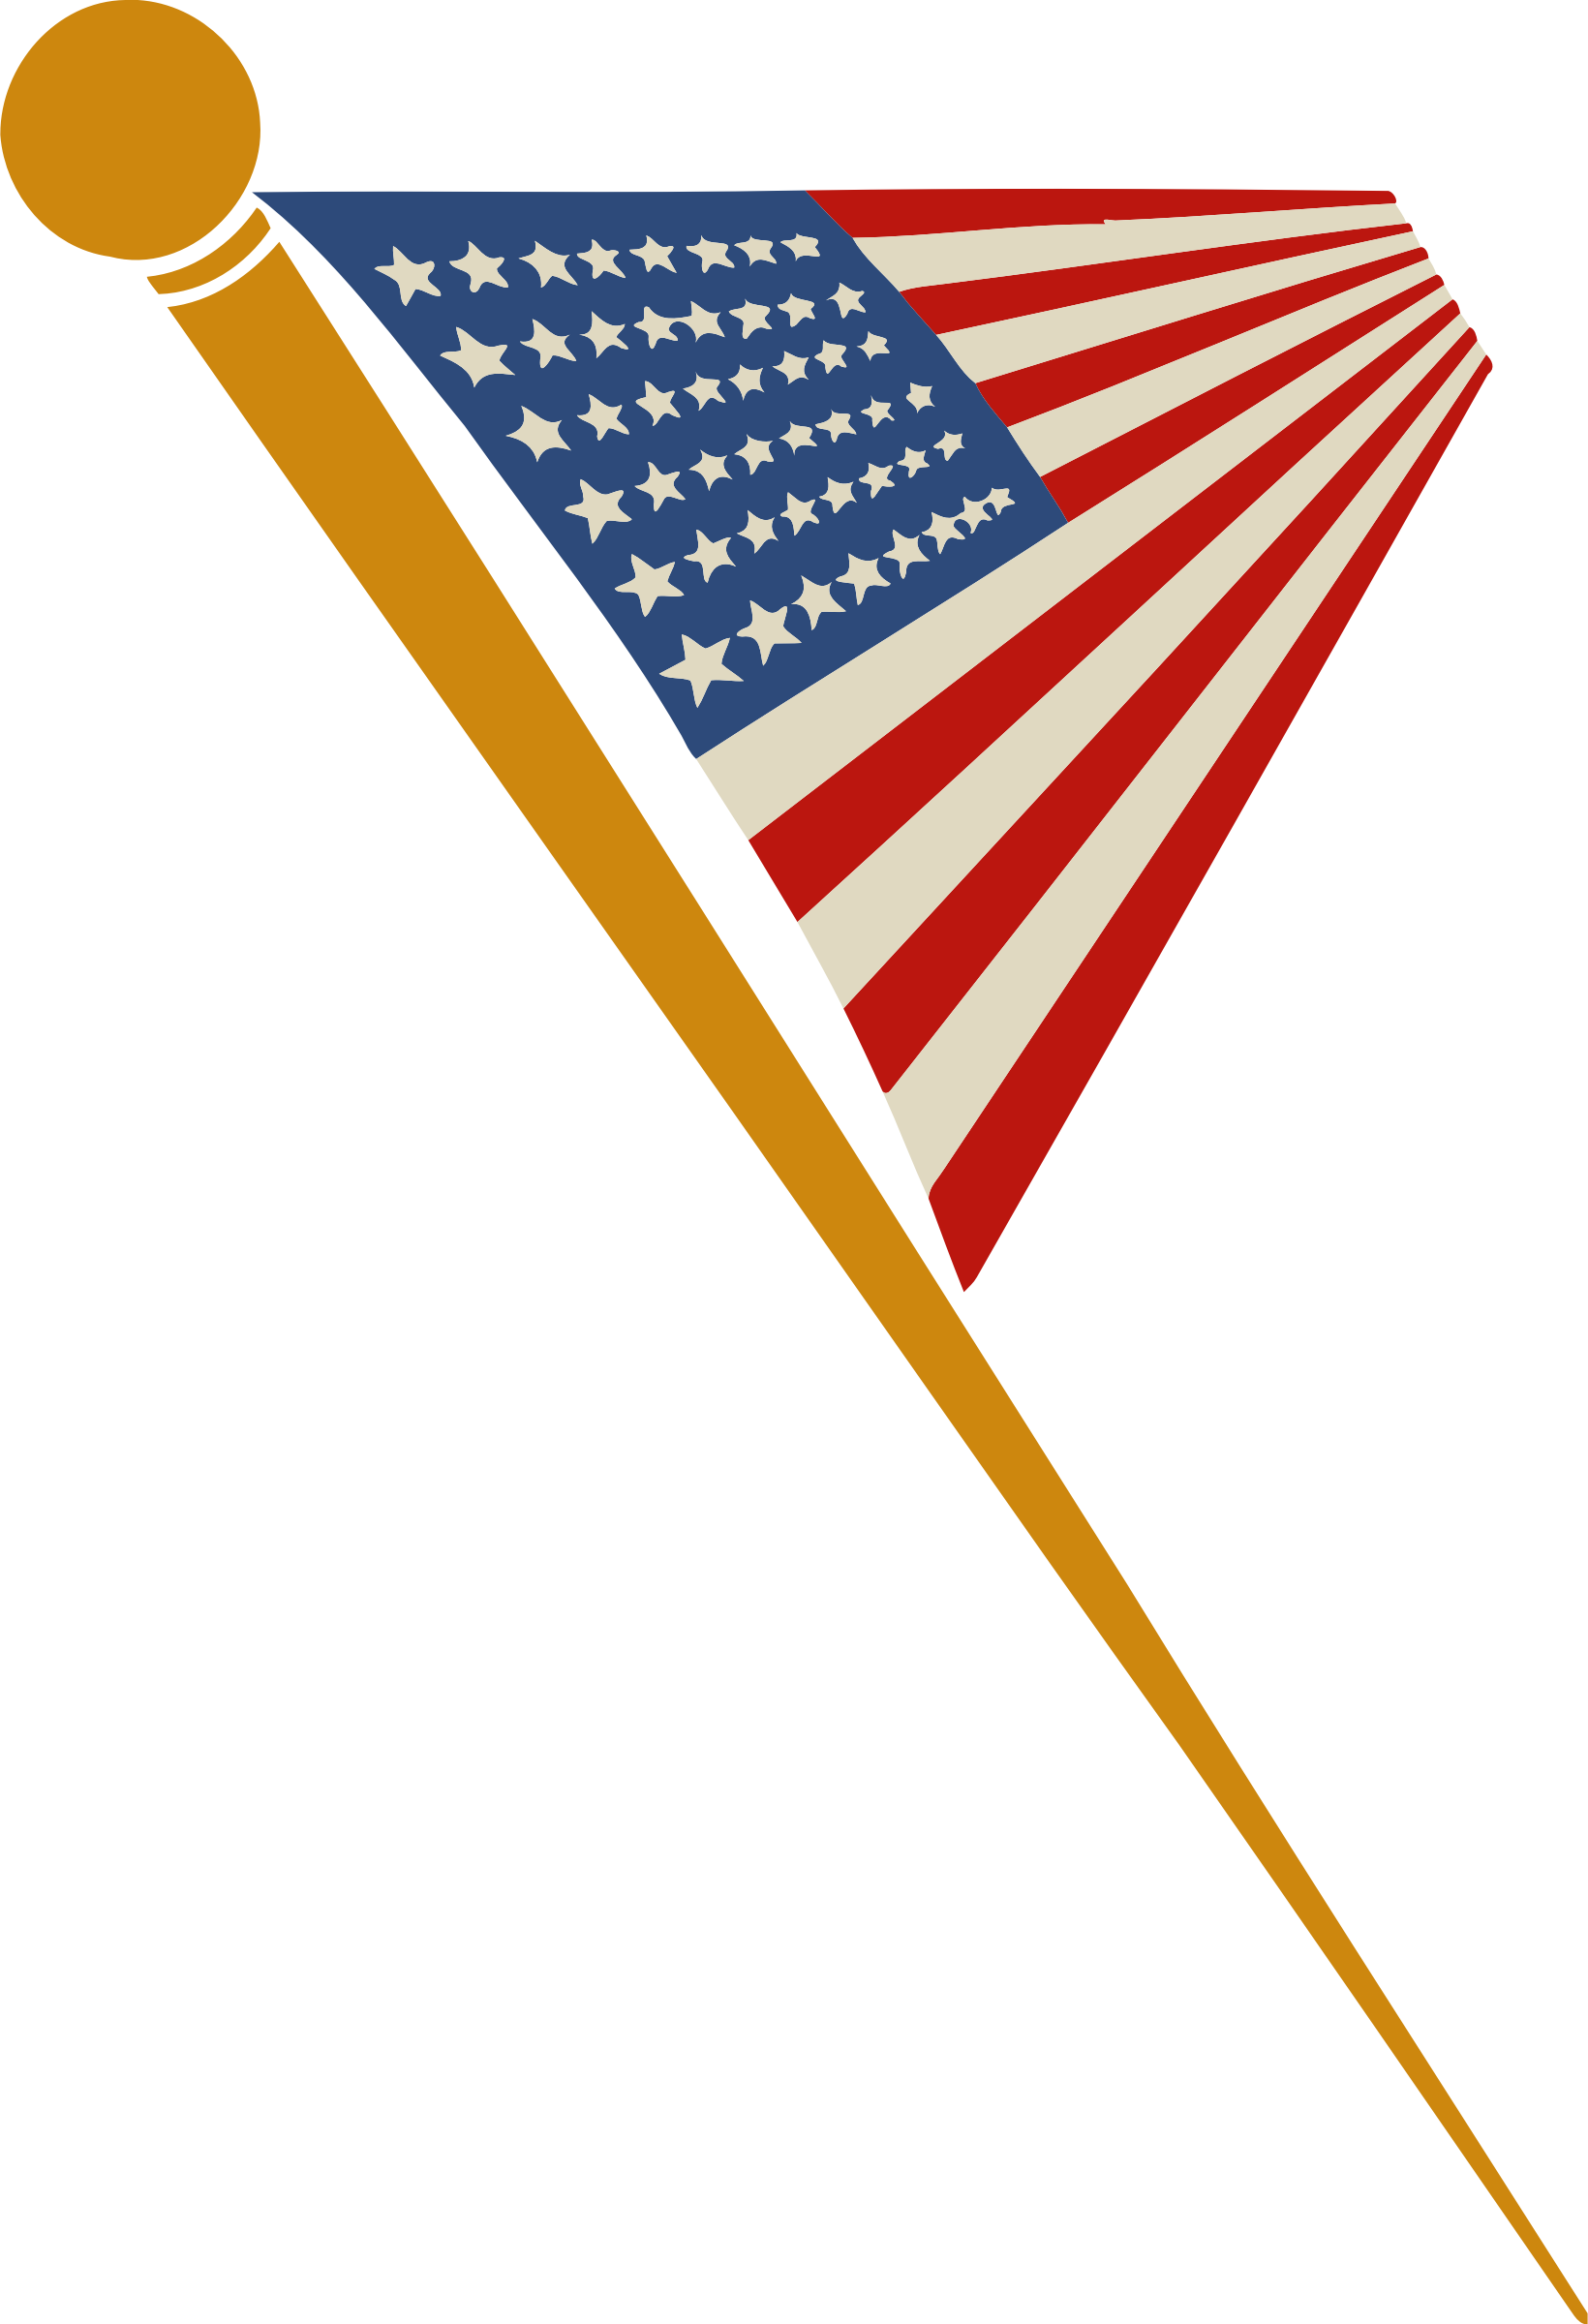 US flag 2 by Firkin